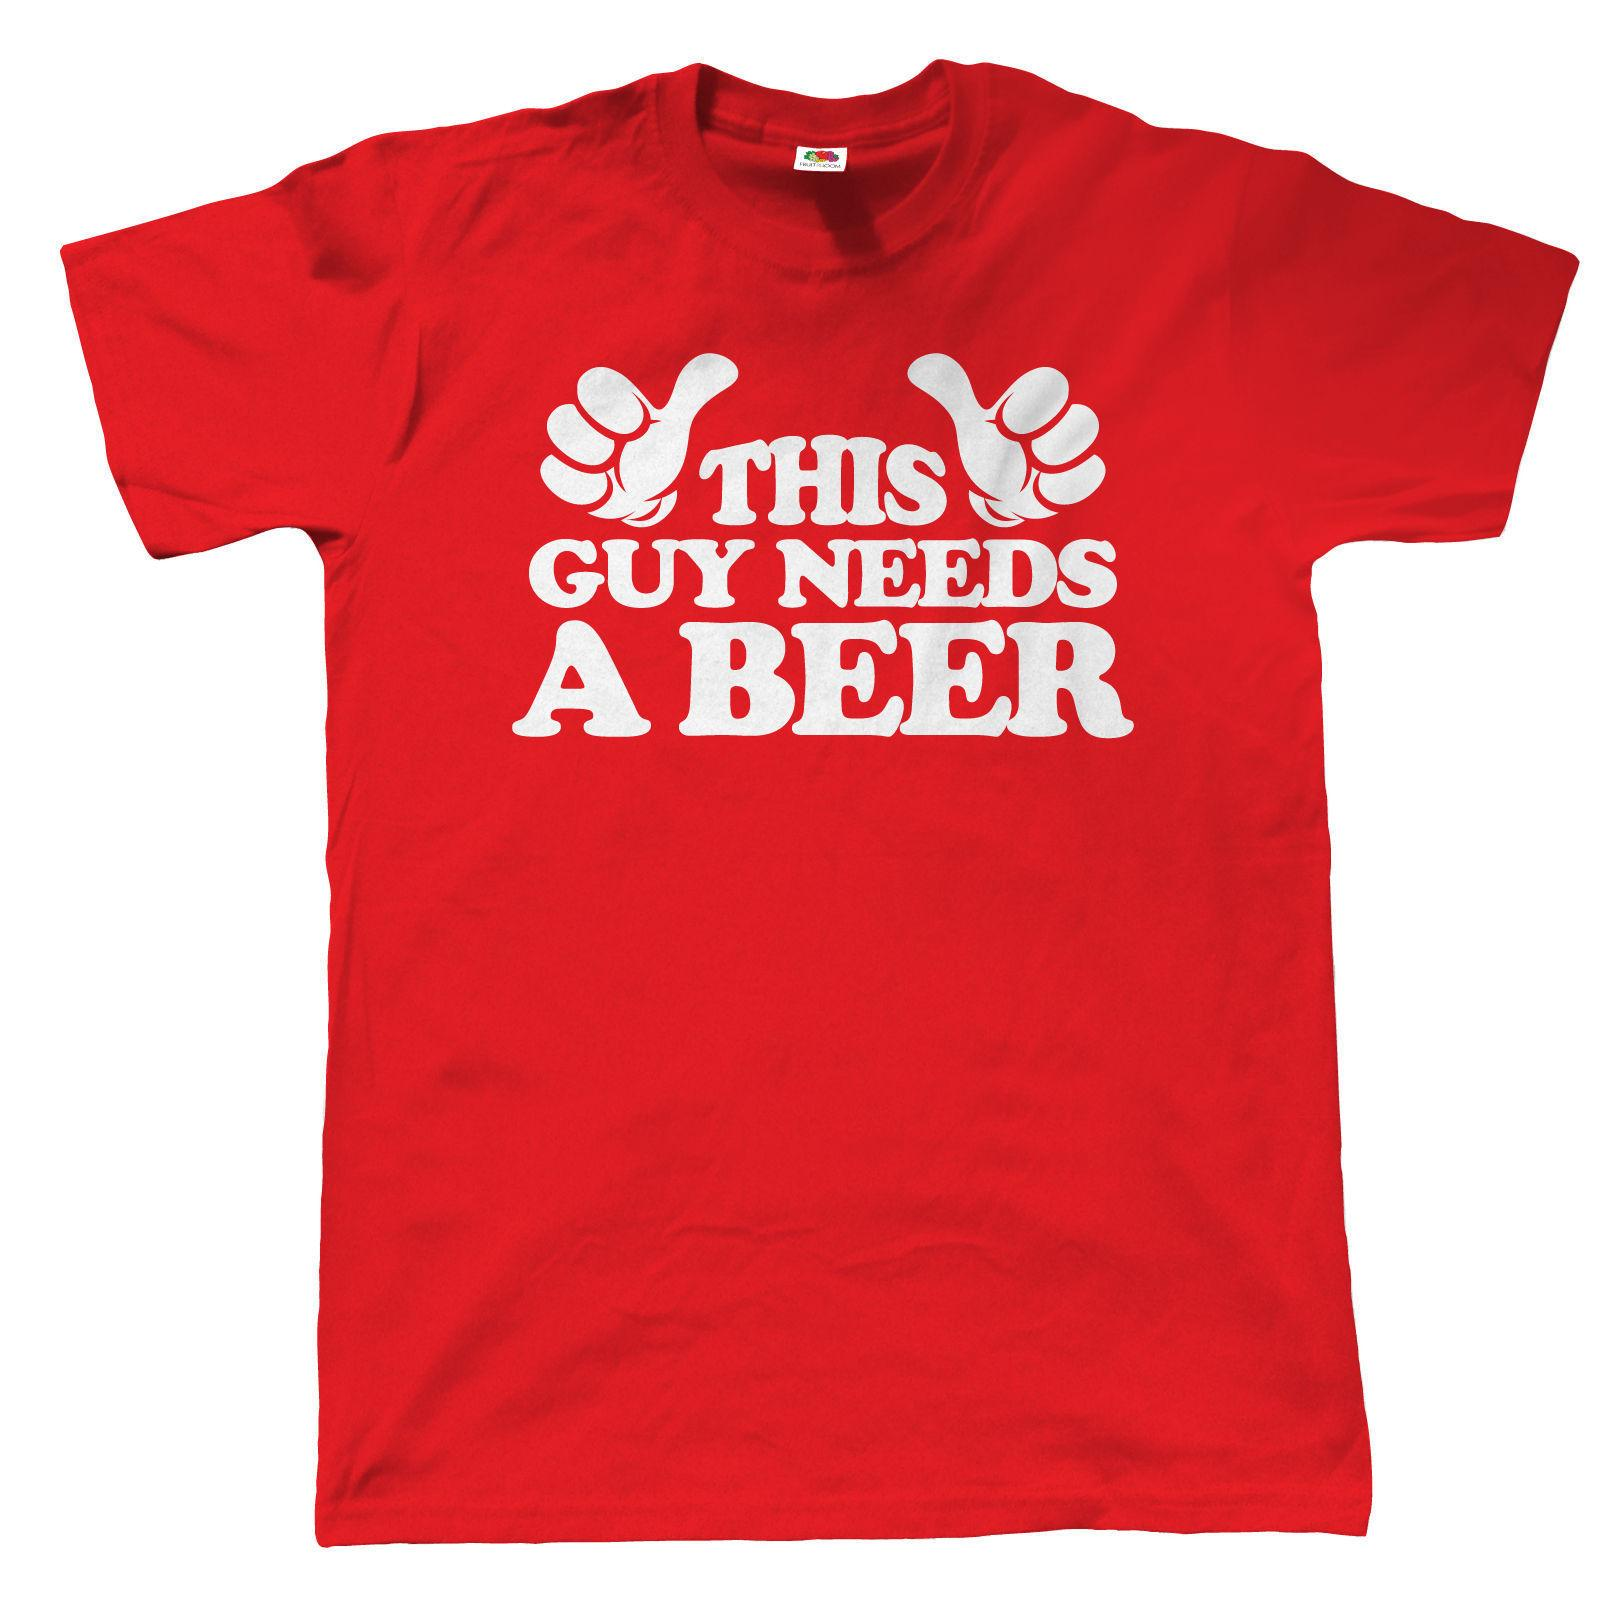 fd8e7af8e9c8 This Guy Needs A Beer Mens Funny T Shirt Gift Birthday Birthday T Shirt  Every Day Funny Cool Shirts From Directwallartuk